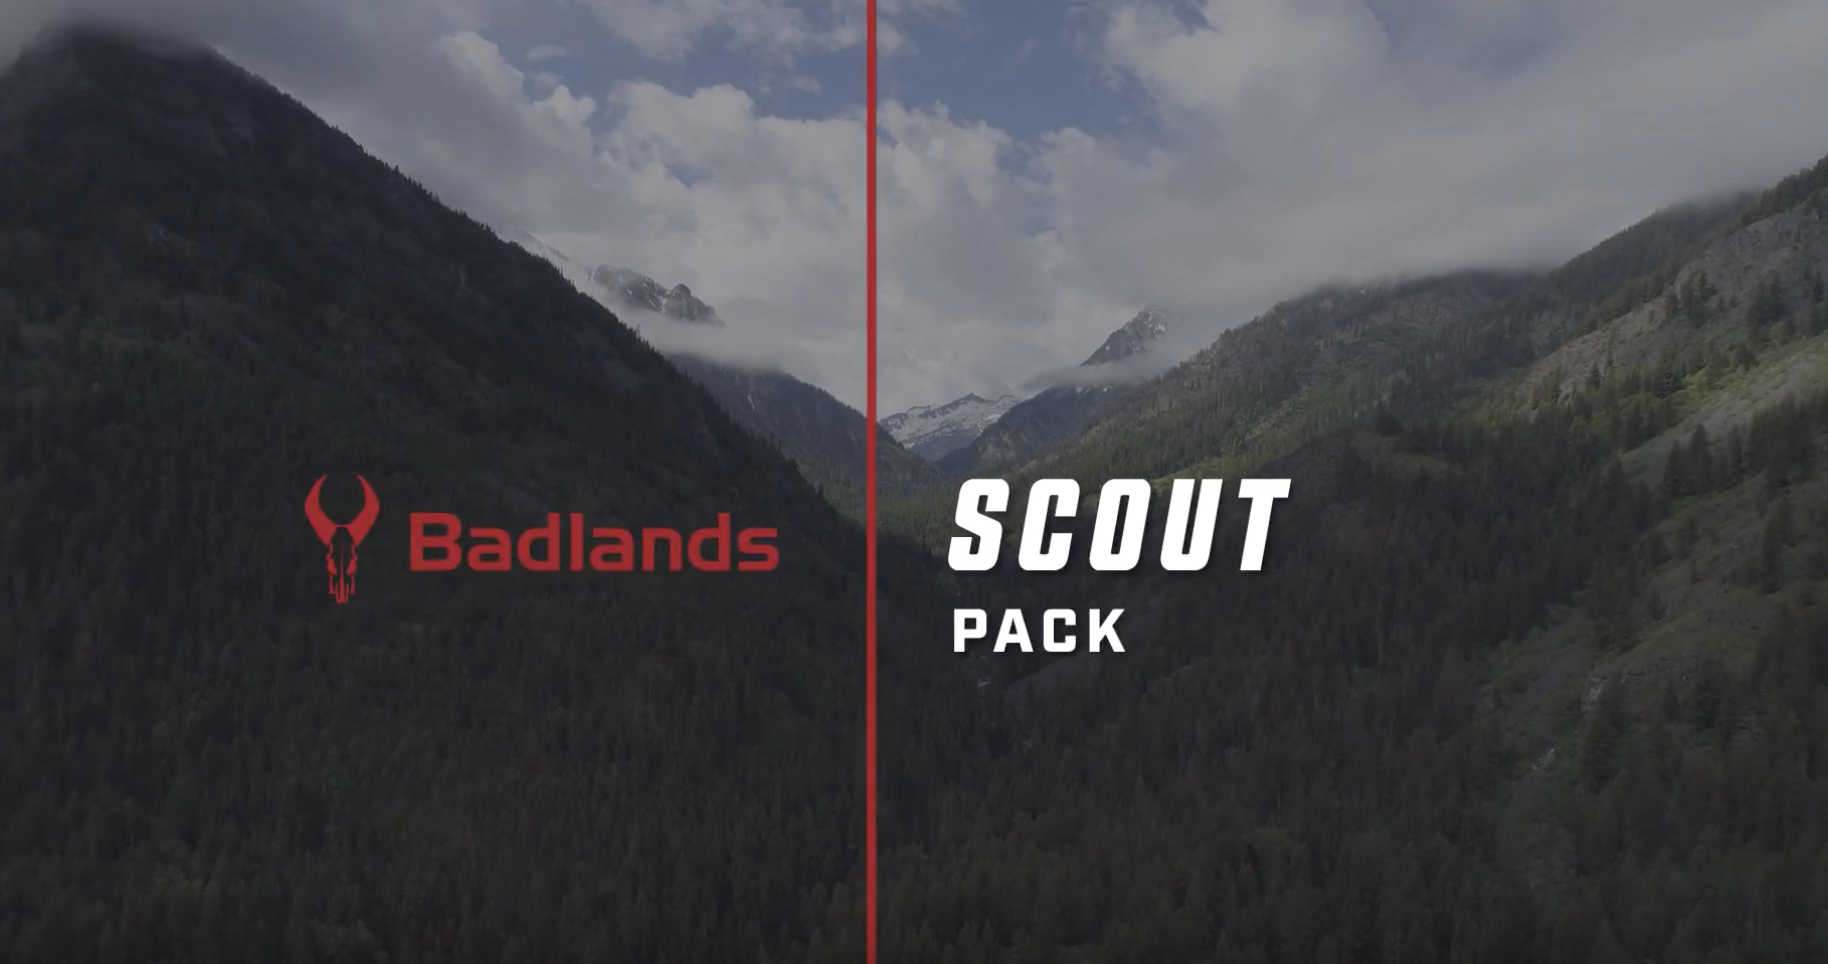 Learn more about the Scout Pack